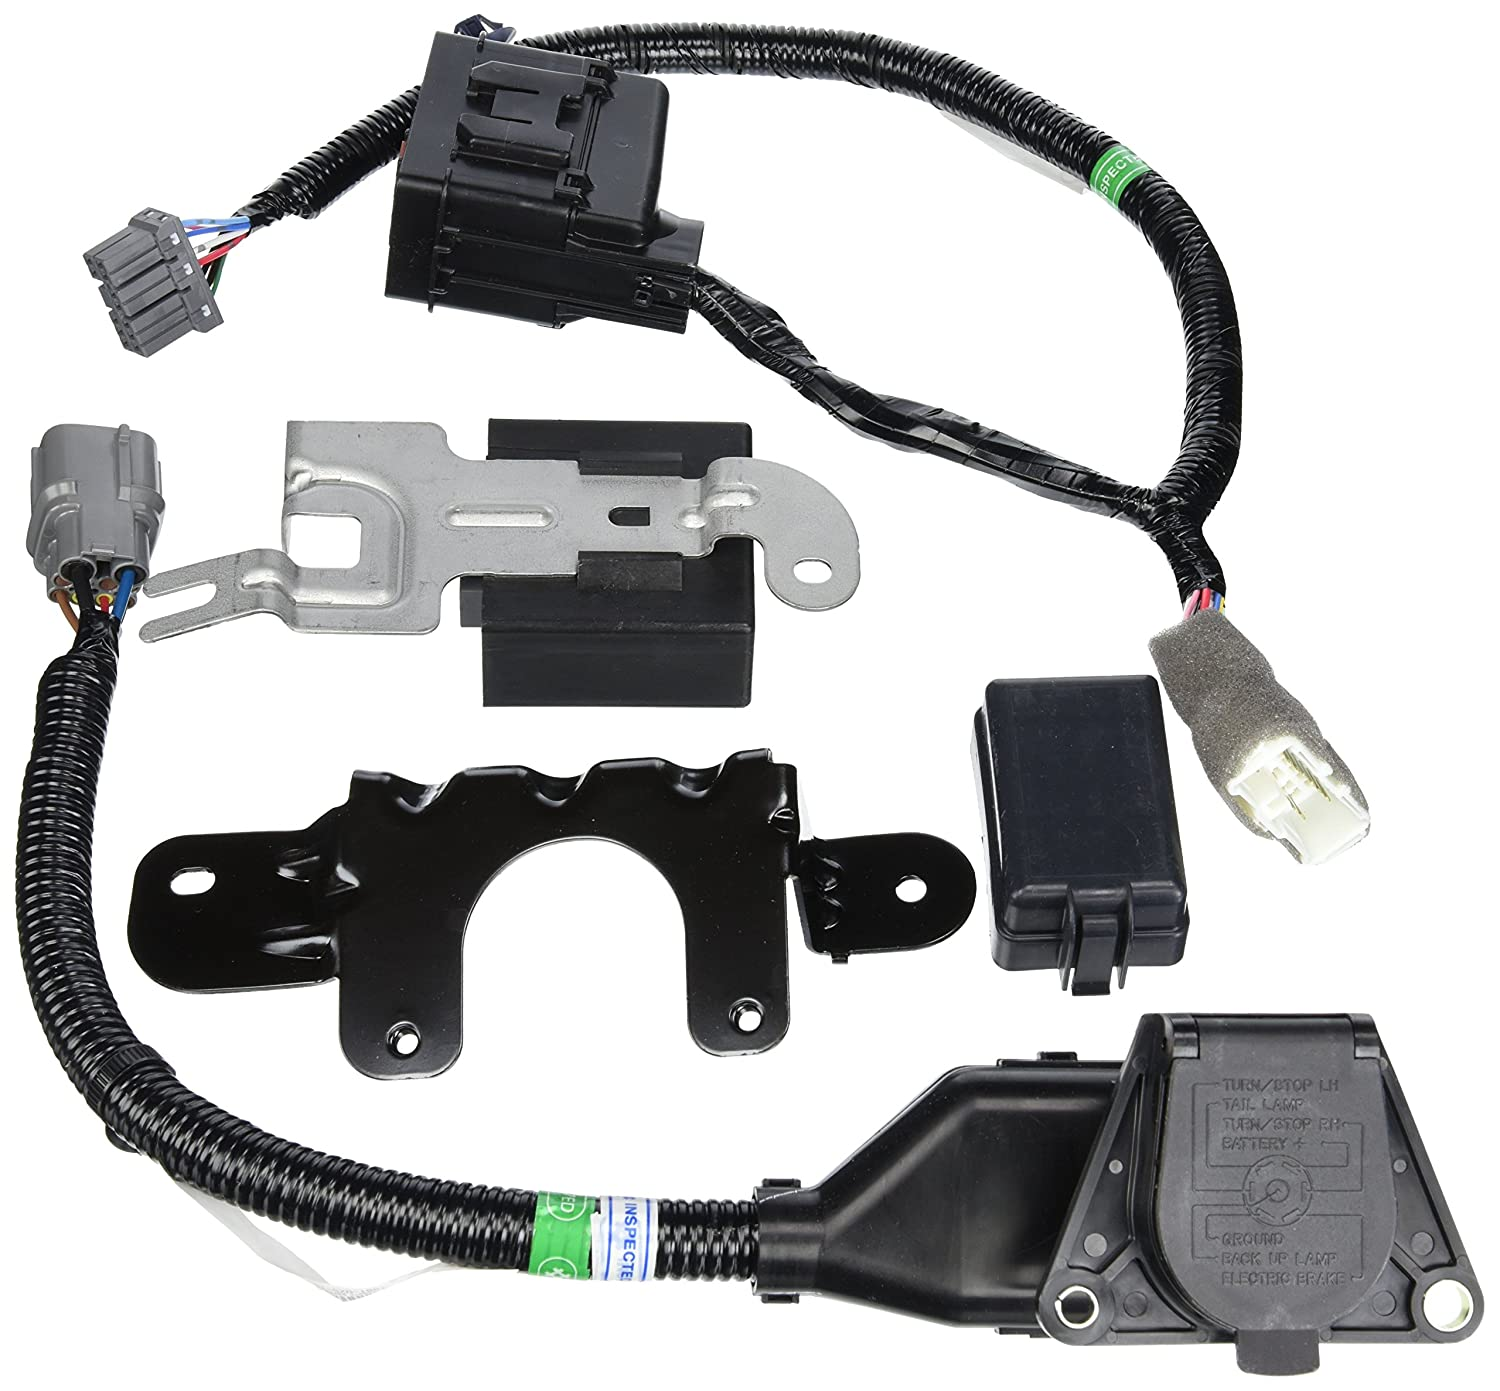 Wiring Trailer Hitch Harness Smart Diagrams U Haul 21 Diagram Images Bmw X5 Installation